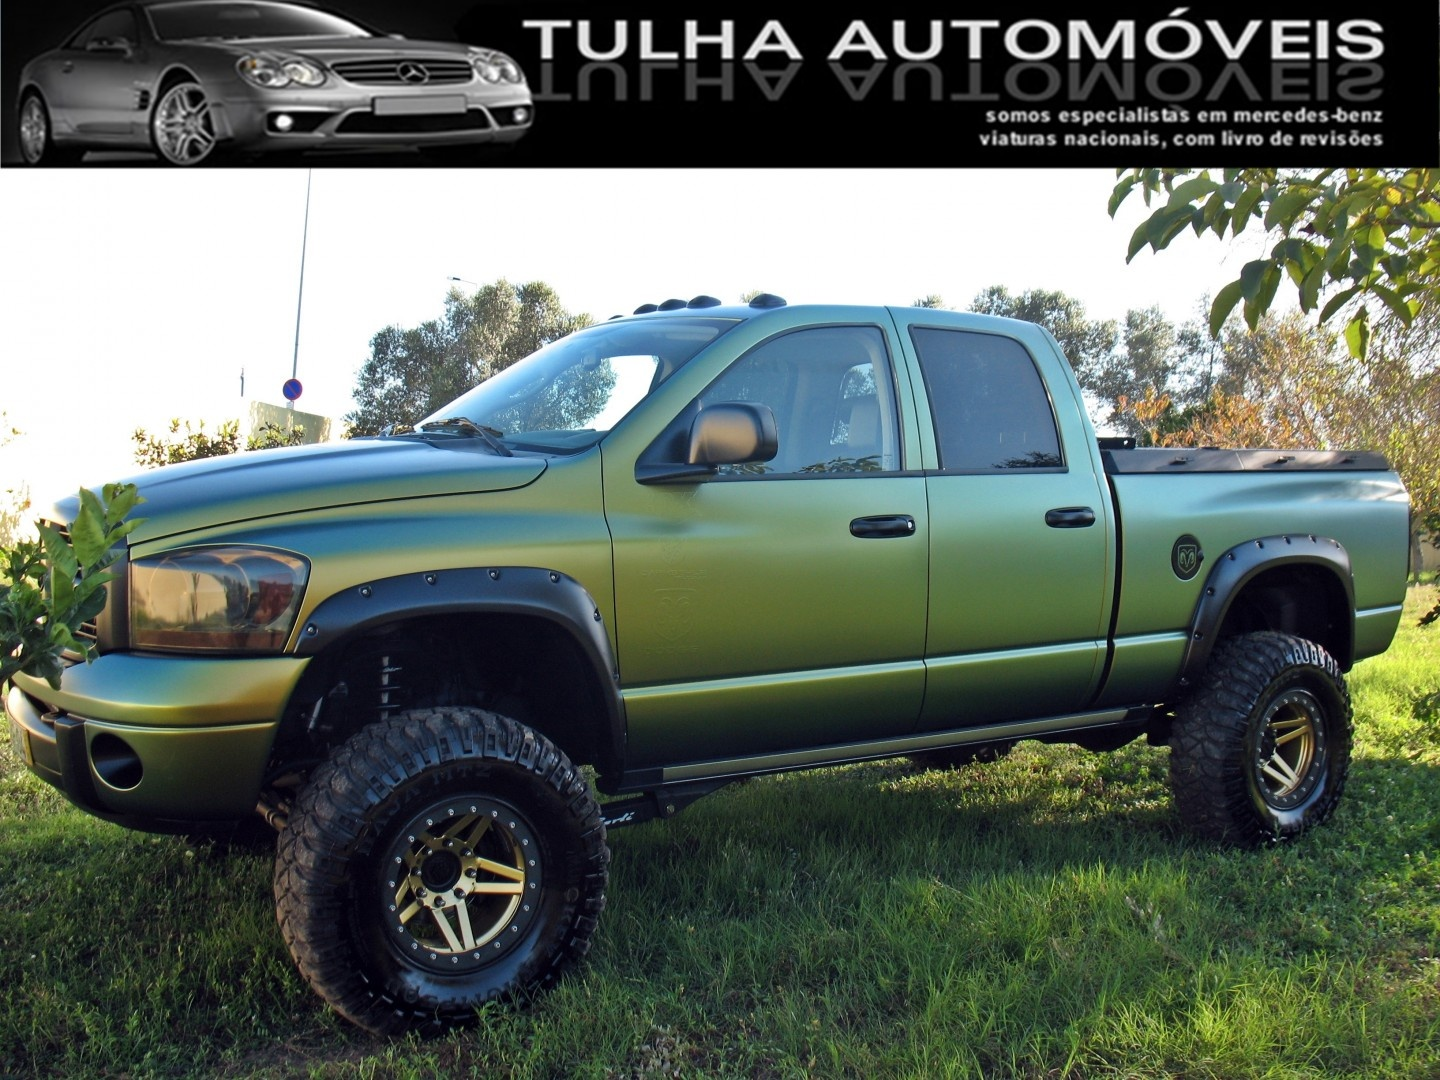 Dodge RAM 2500 C 5.9 Turbo Diesel